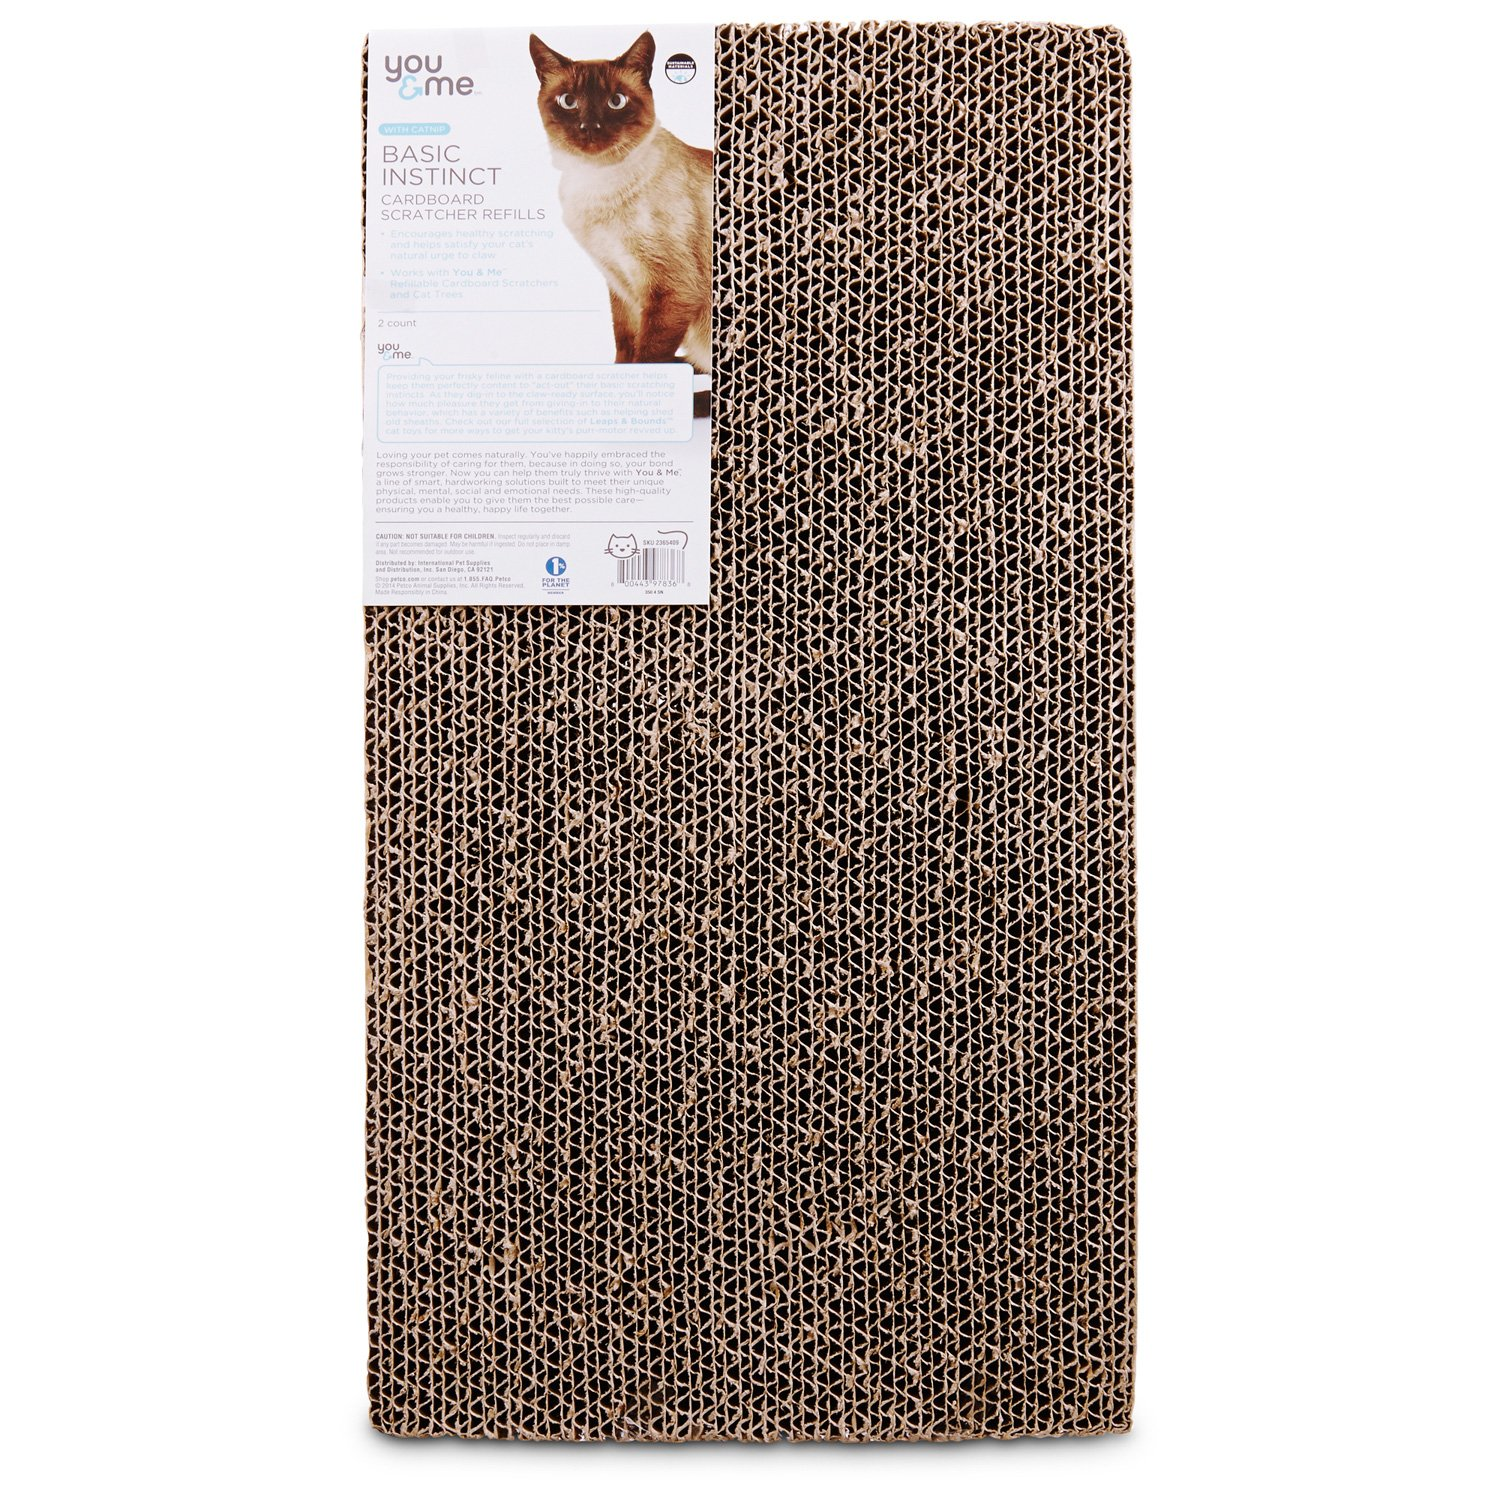 You & Me Double Wide Cardboard Cat Scratcher Refills